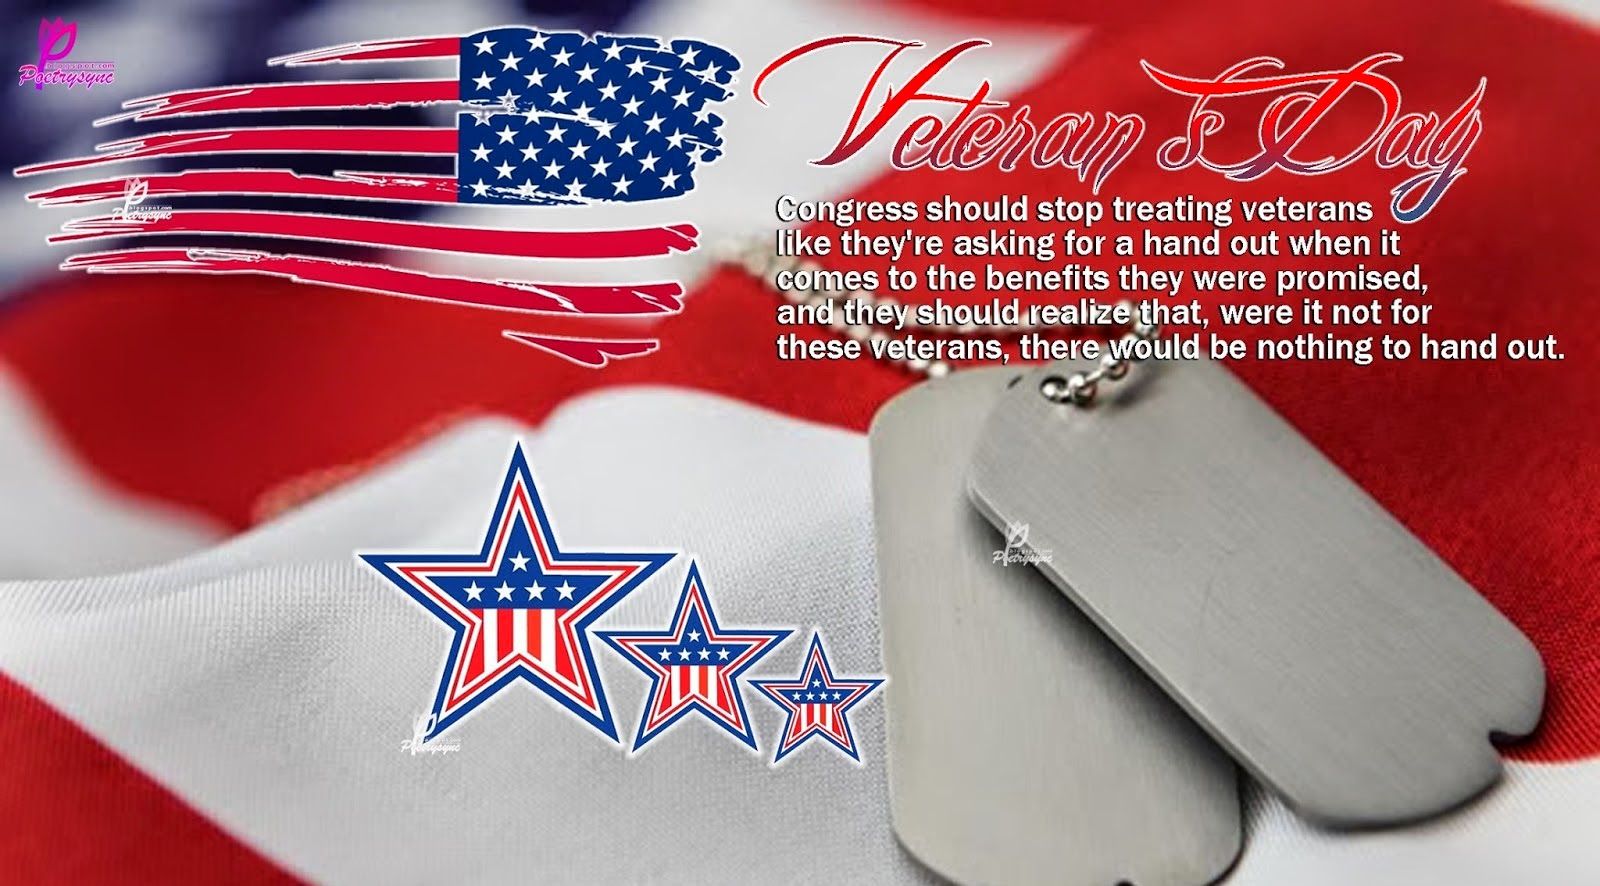 Newhappy veterans day 2014 poems veterans day 2014 quotes happy veterans day 2014 images quotes poems and saying facebook fb m4hsunfo